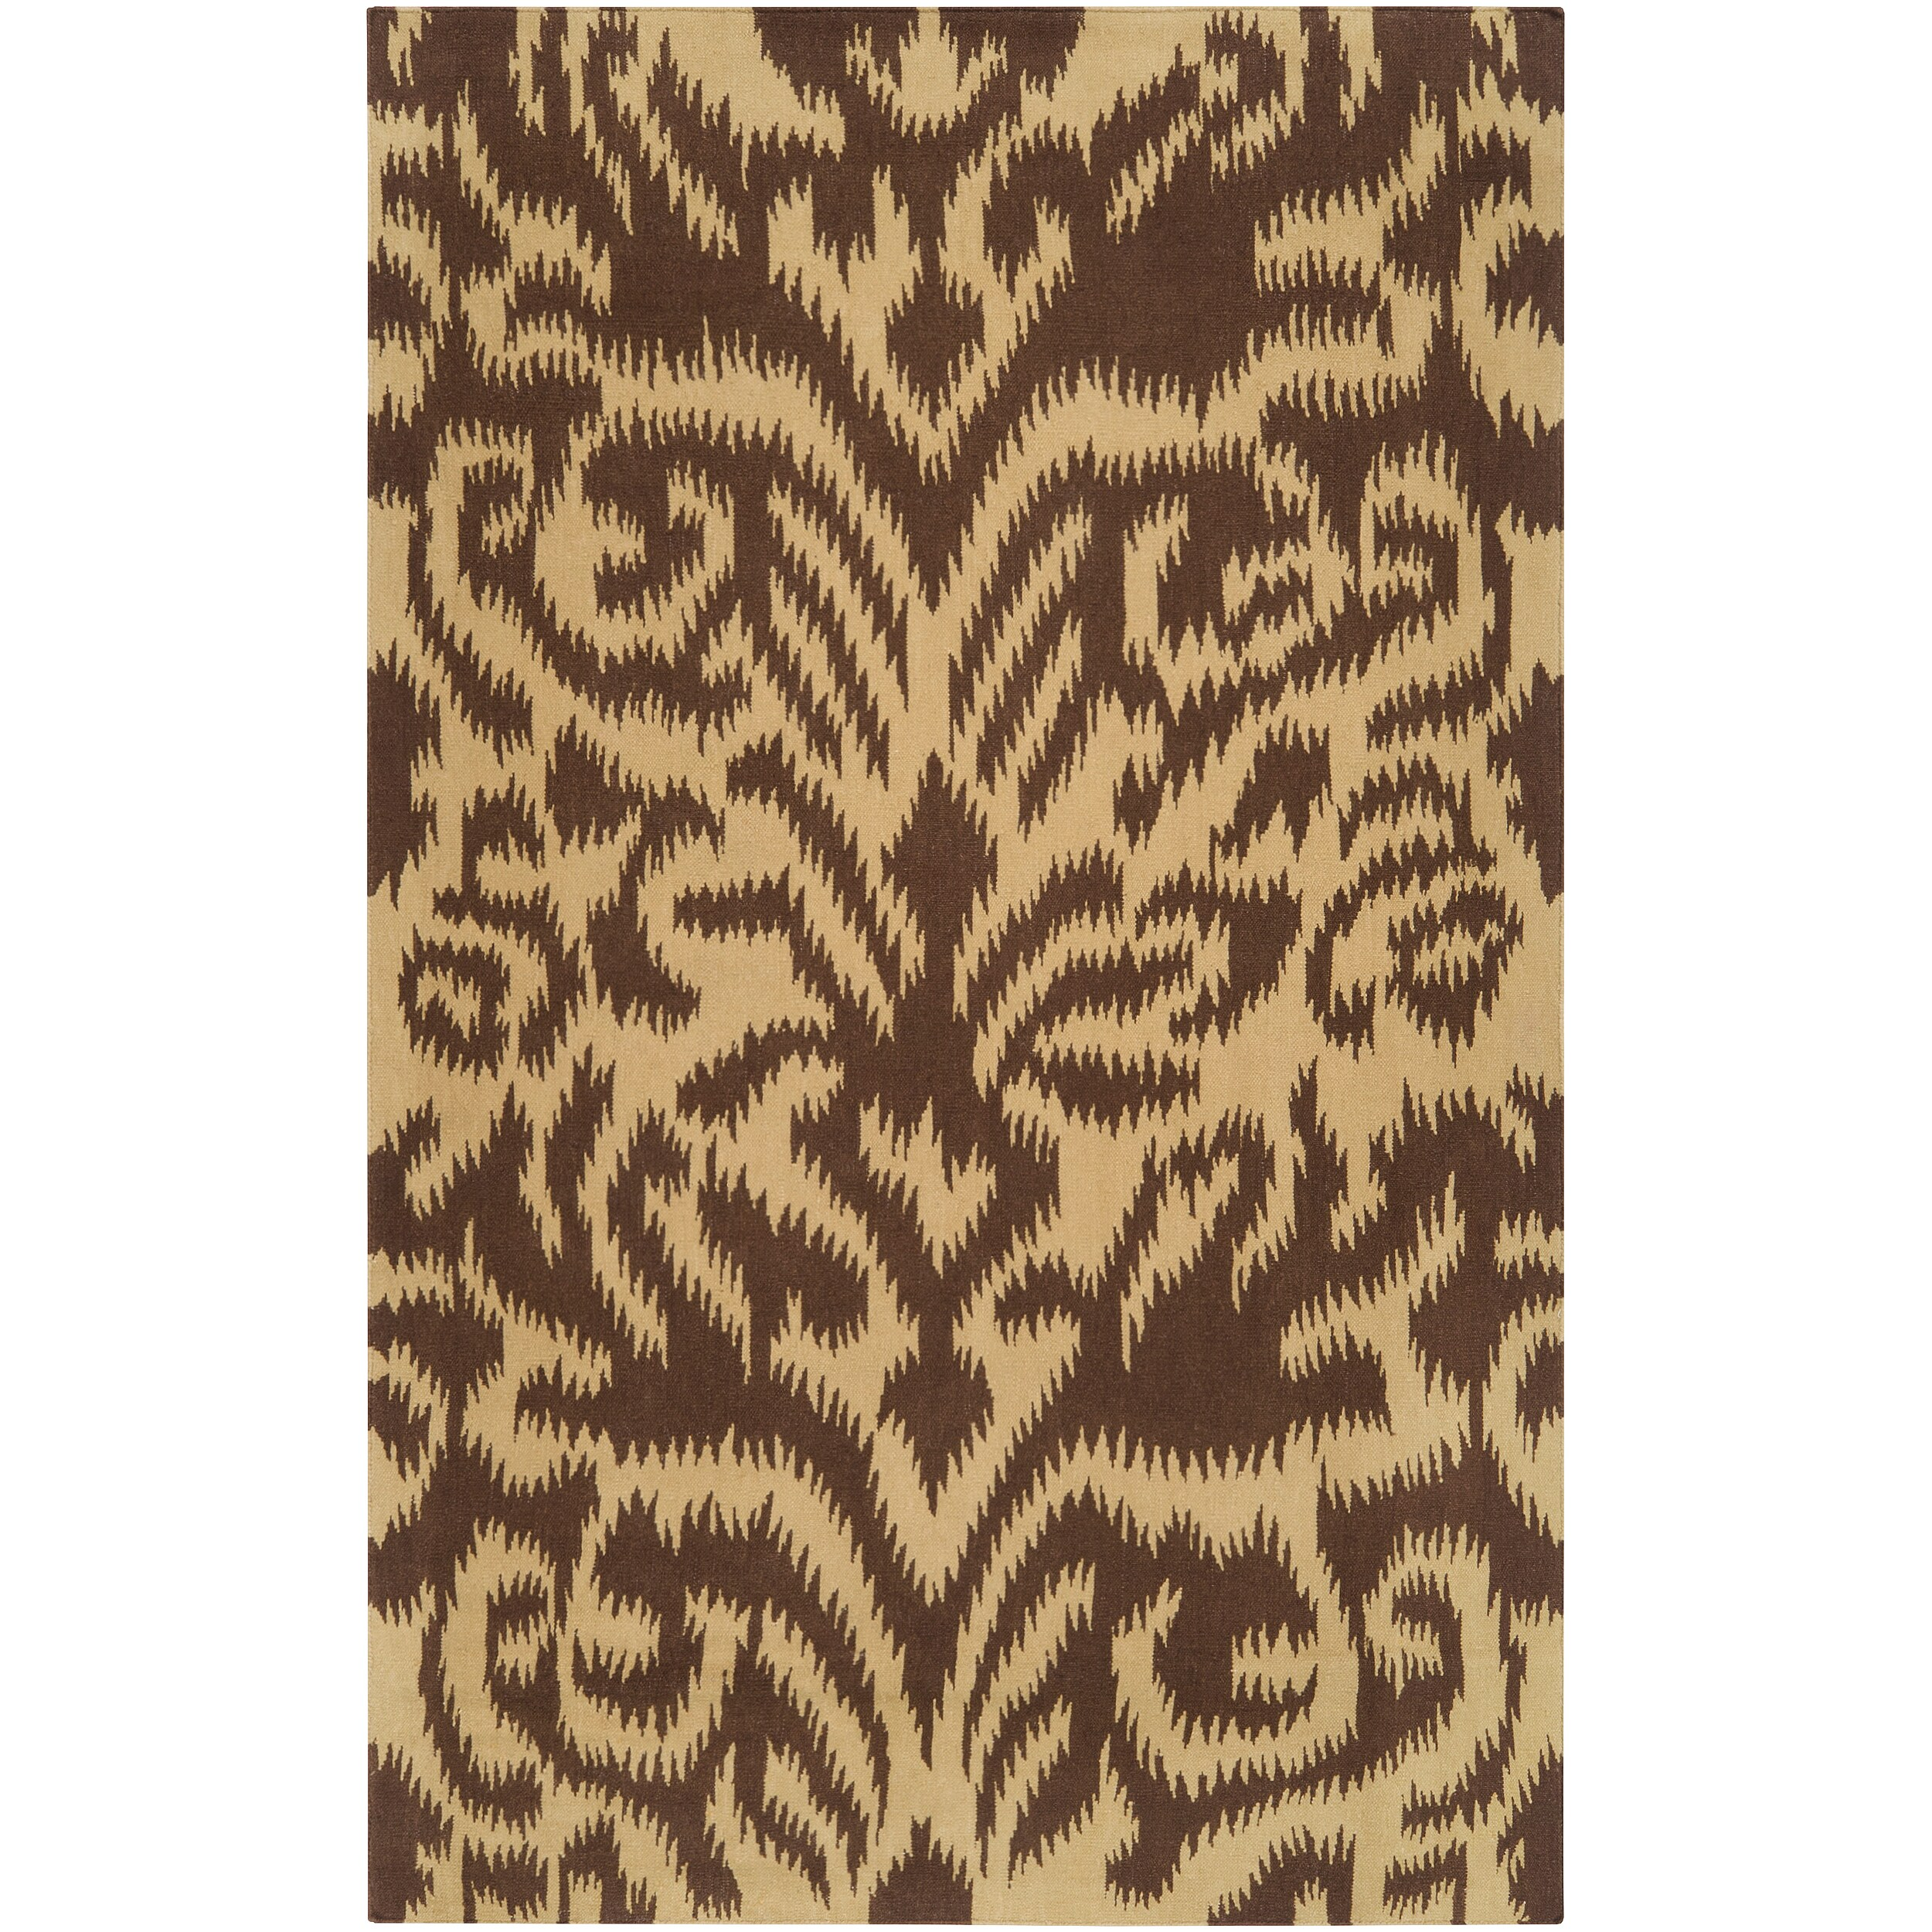 Hand-woven B. Smith 'Saged' Brown Wool Rug (3'3 x 5'3)